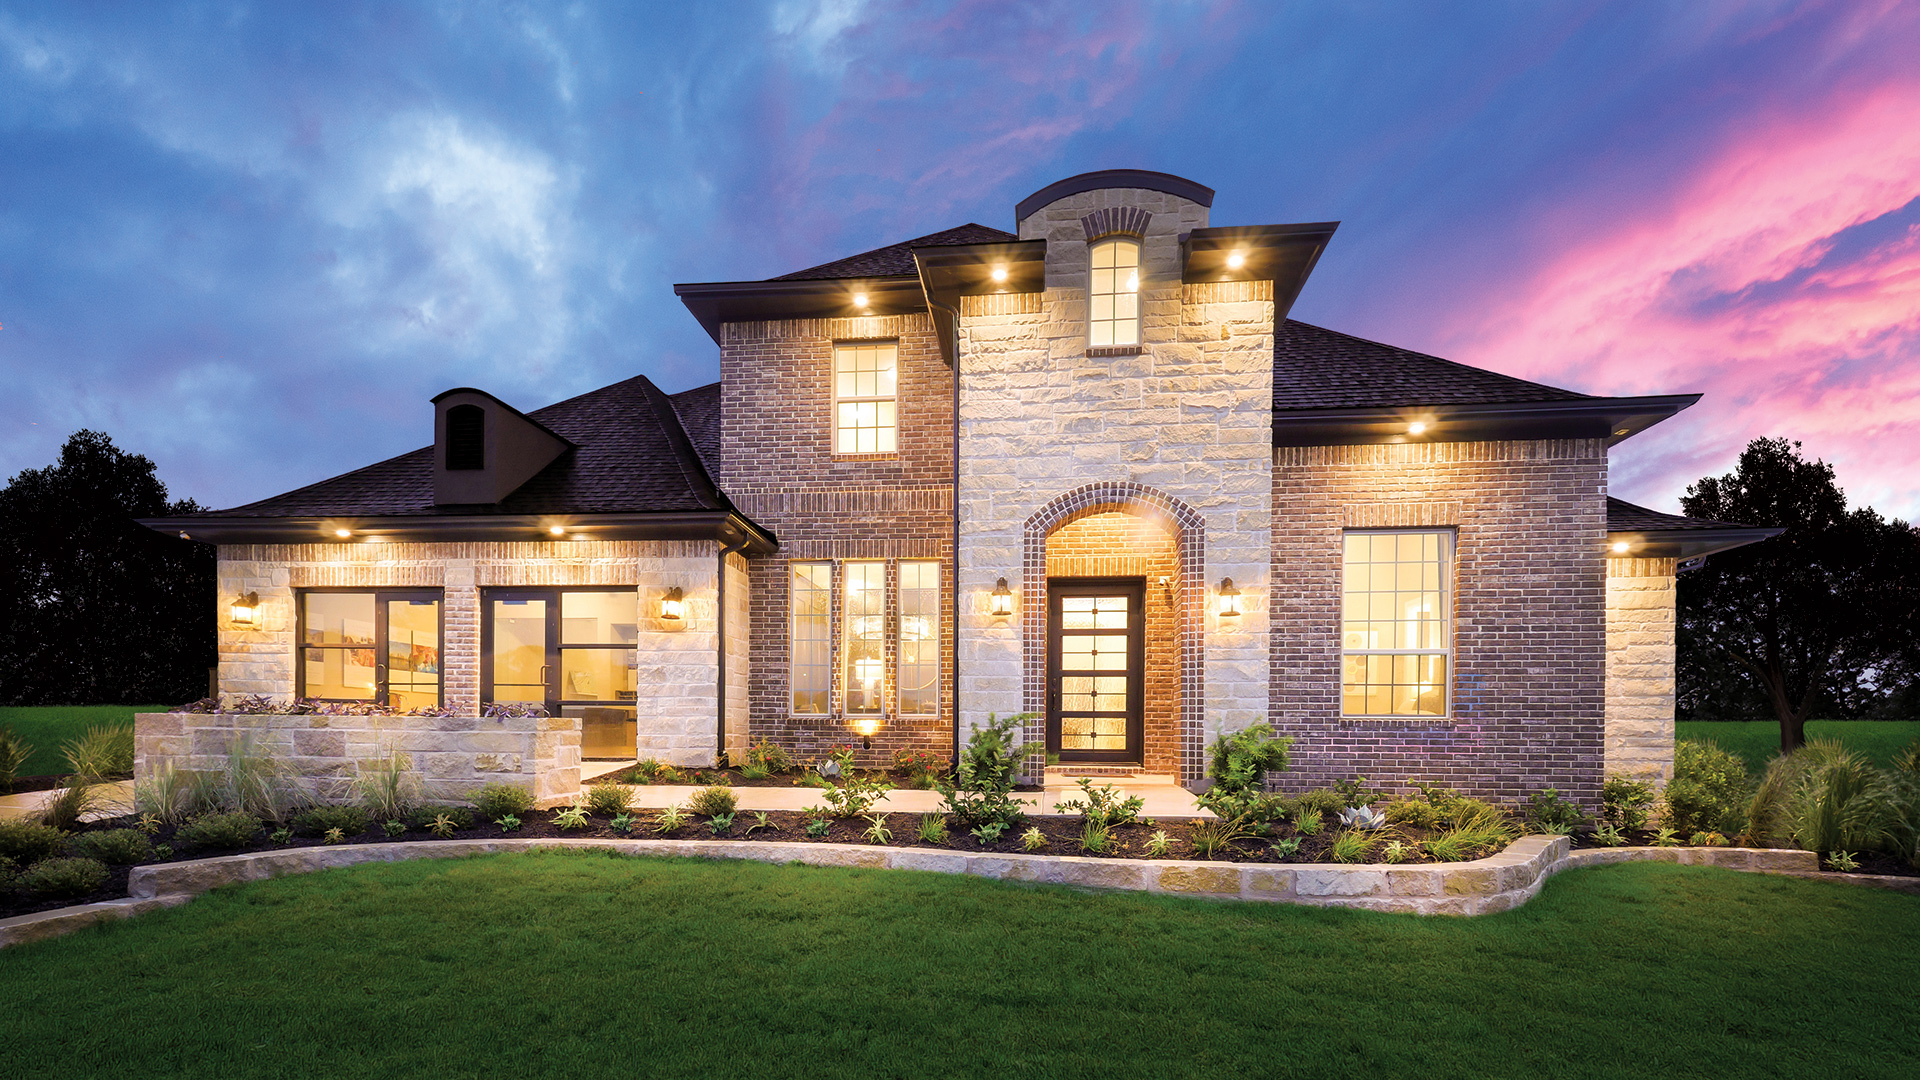 New Luxury Homes For Sale in Manvel, TX | Pomona - Executive ... on shenandoah texas map, friendswood texas map, pearland texas map, colfax texas map, knippa texas map, wimbledon texas map, west university place texas map, hardin texas map, pflugerville texas map, kennard texas map, ashley texas map, pinehurst texas map, iraan texas map, cypress texas map, nordheim texas map, irving texas map, manor texas map, clute texas map, hungerford texas map, greater houston texas map,